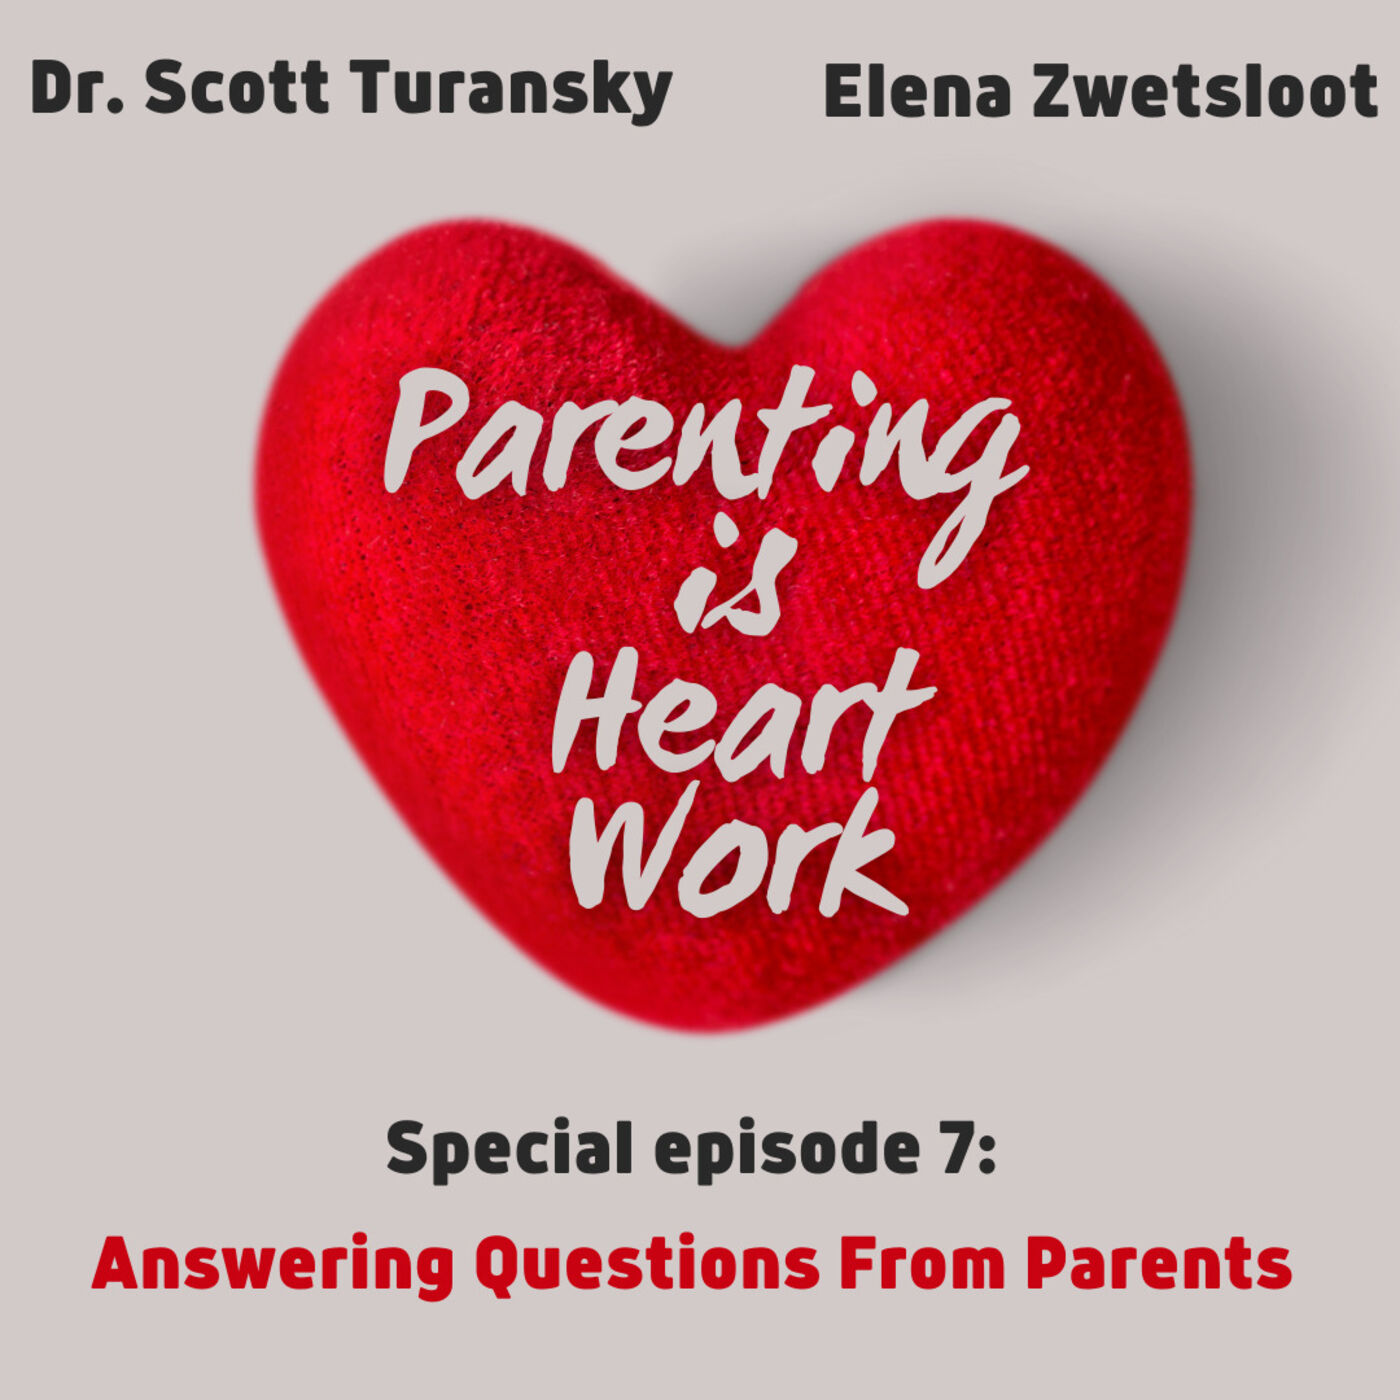 6. Special Episode: Answering Questions From Parents